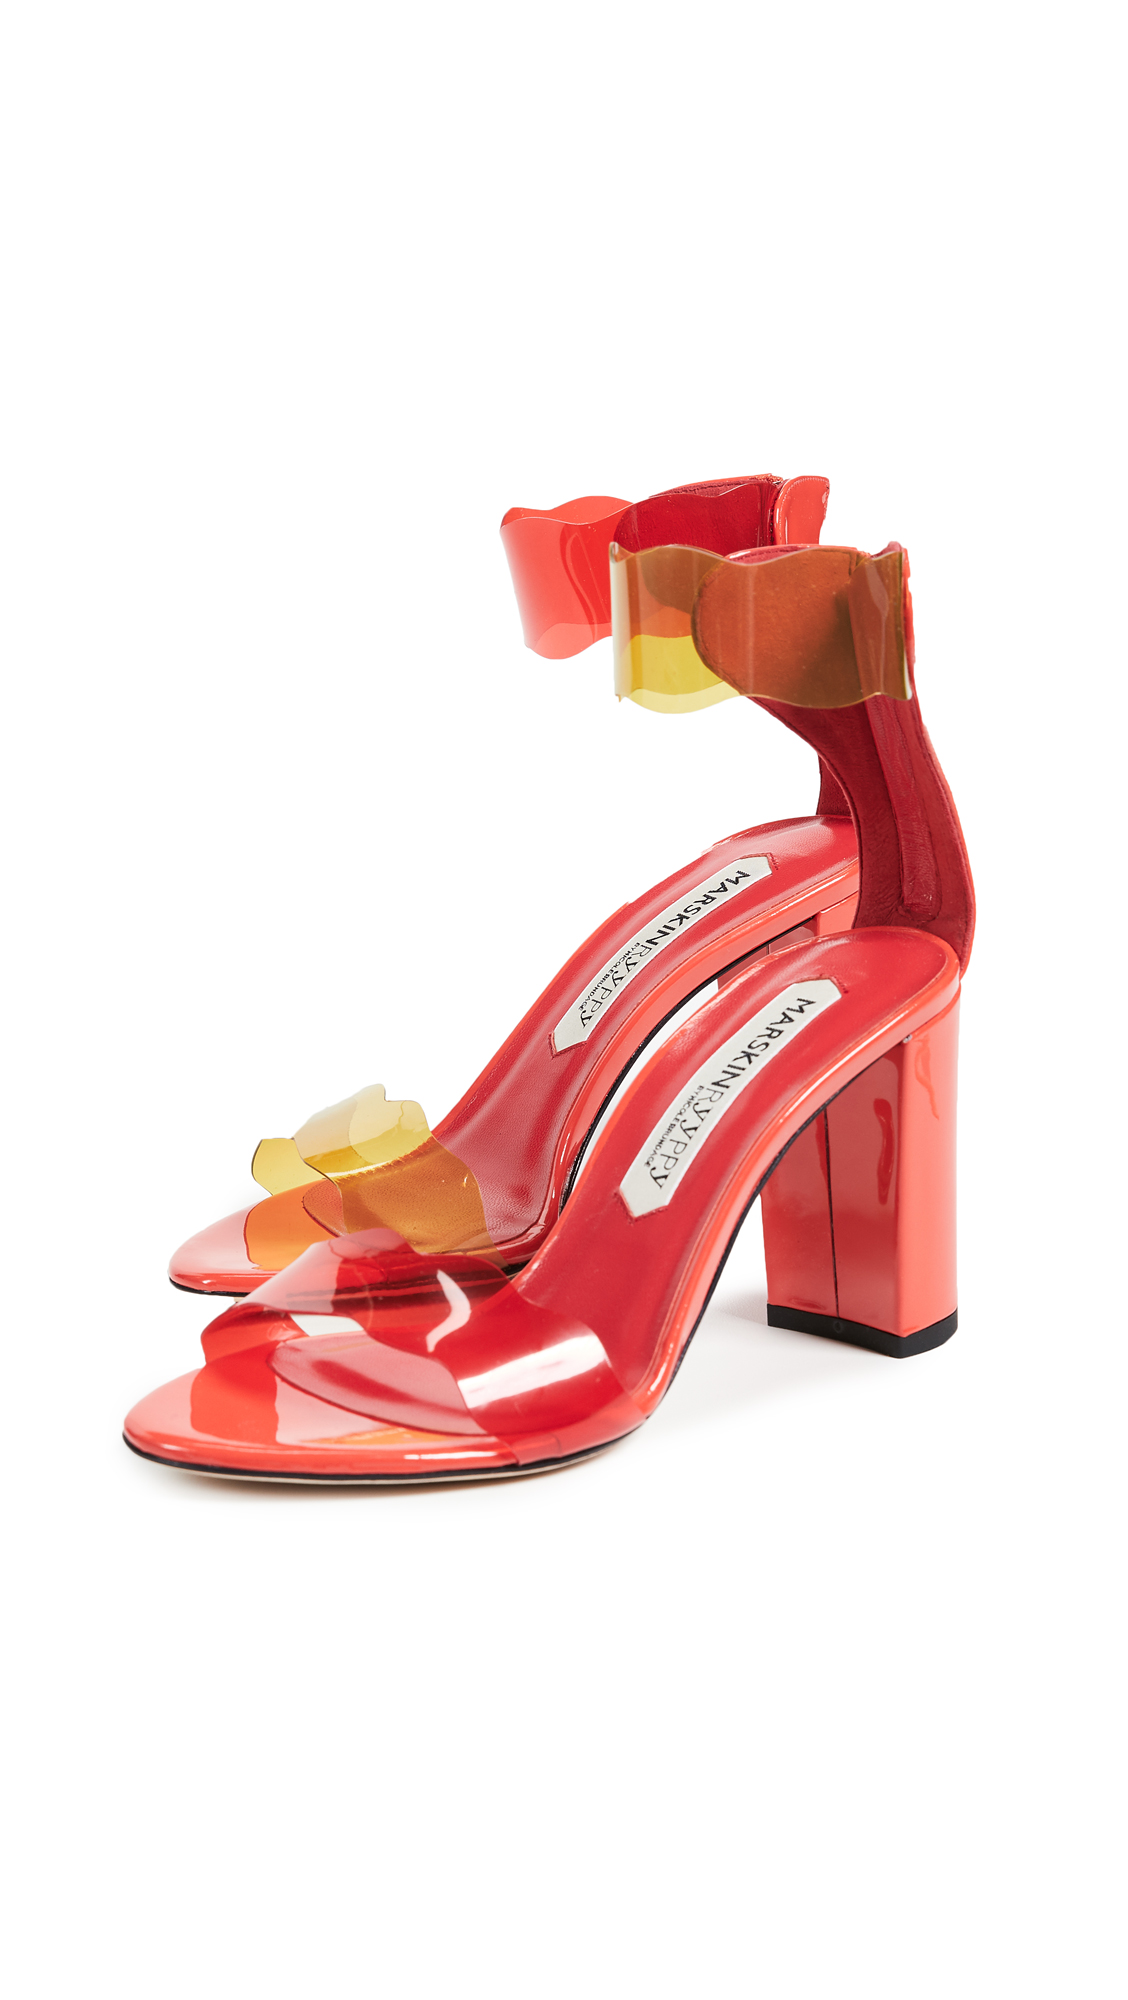 MARSKINRYYPPY Piwi Sandals - Indie Red/Red/Yellow